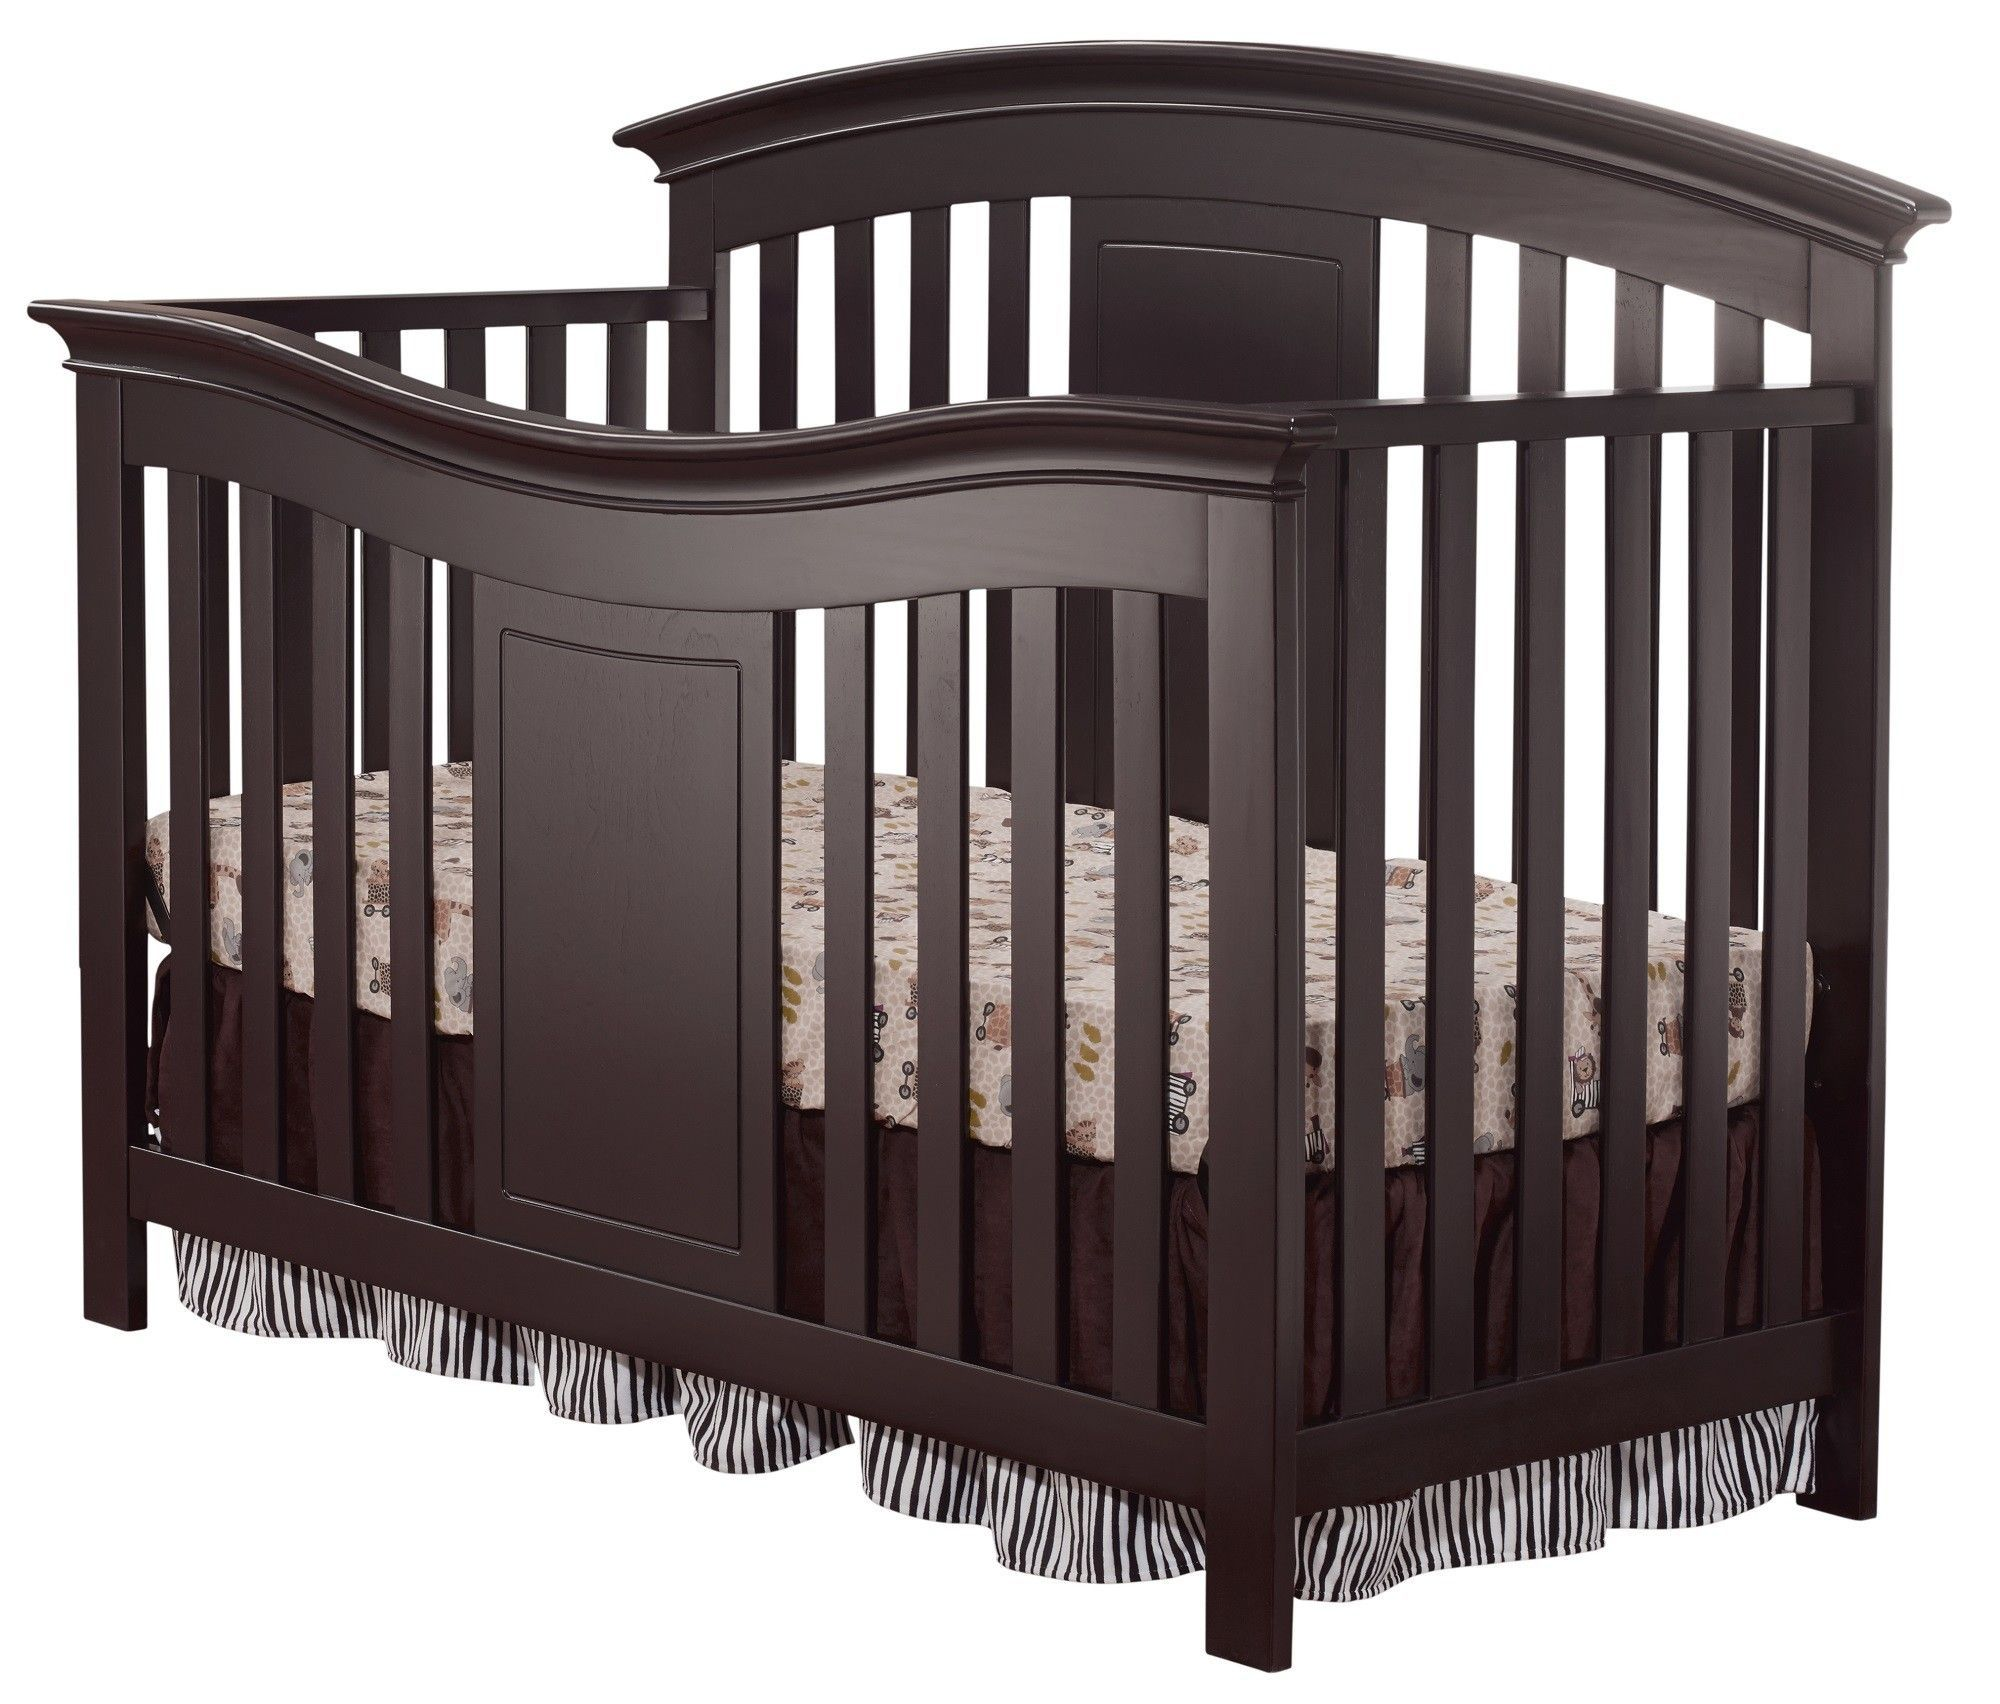 Yorkshire 4 In 1 Convertible Crib Cribs Convertible Crib Convertible Crib Espresso